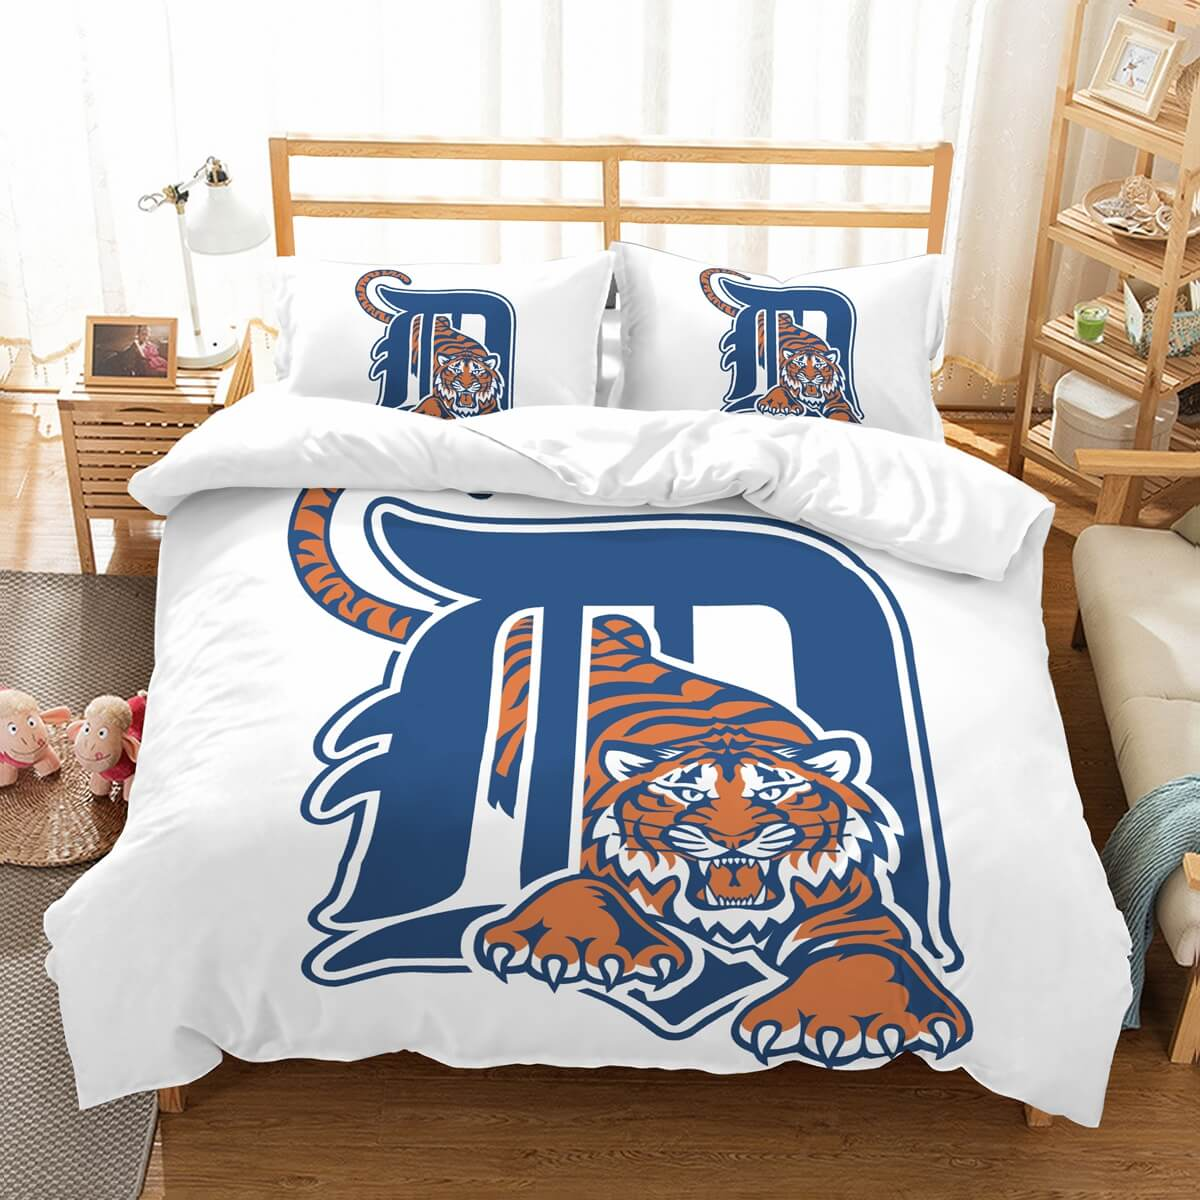 3D Customize Detroit Tigers Bedding Set Duvet Cover Set Bedroom Set Bedlinen